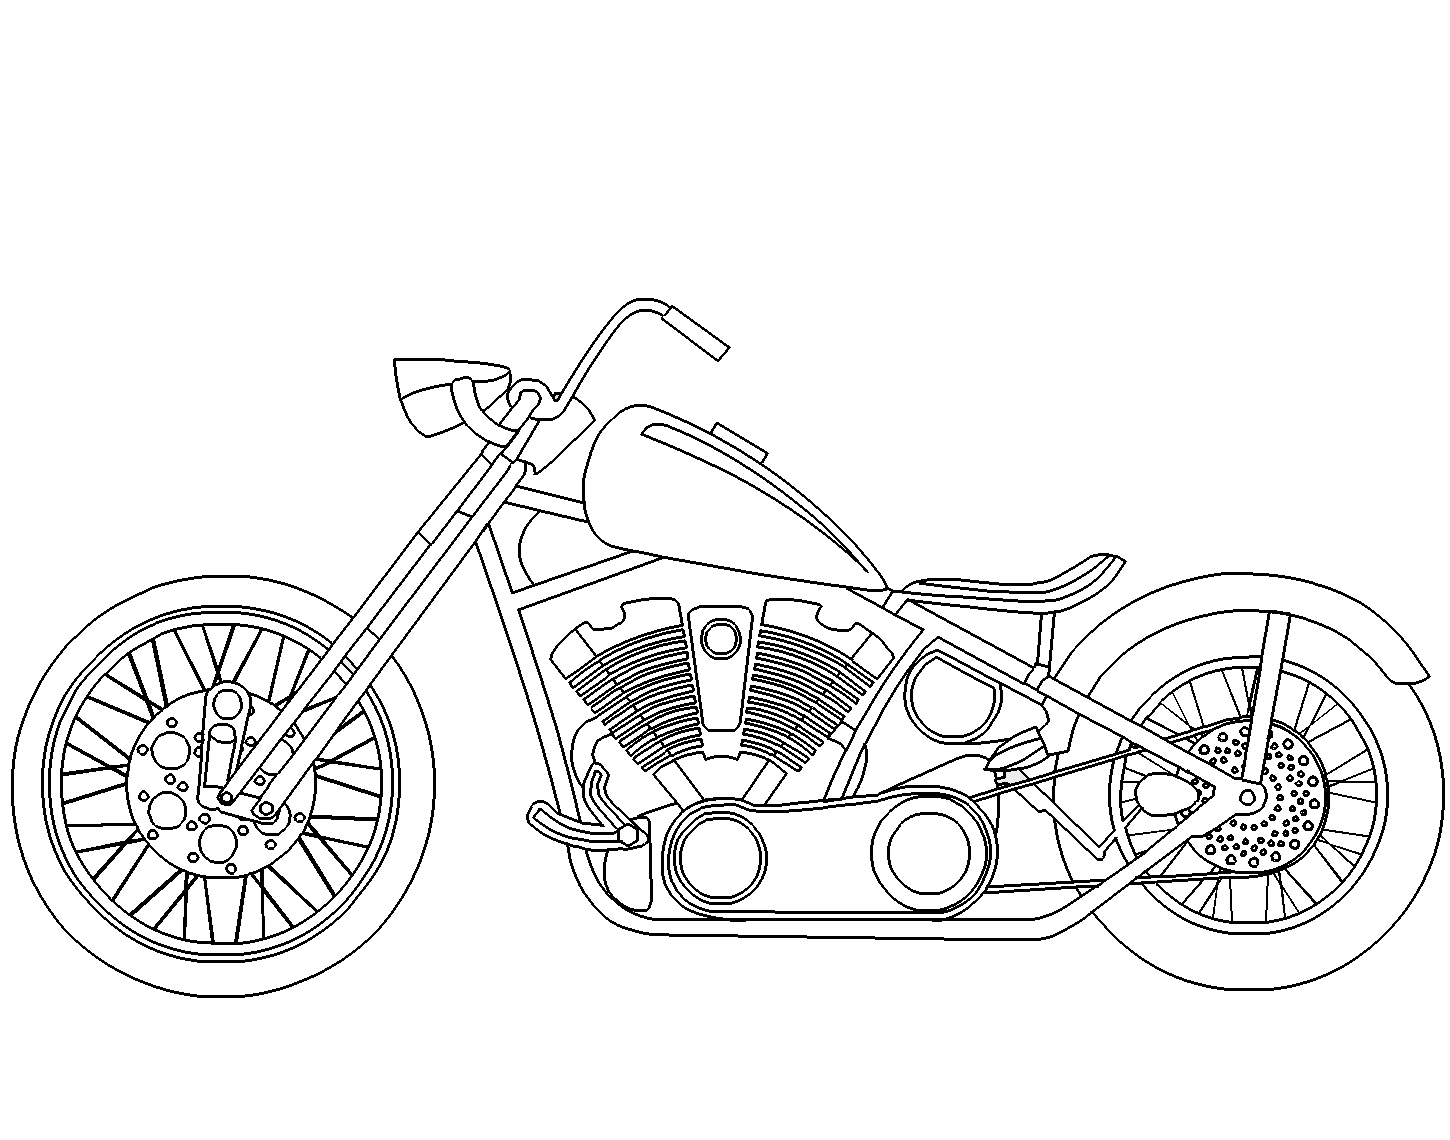 Rotate Resize Tool Drawing Motorcycle Chopper